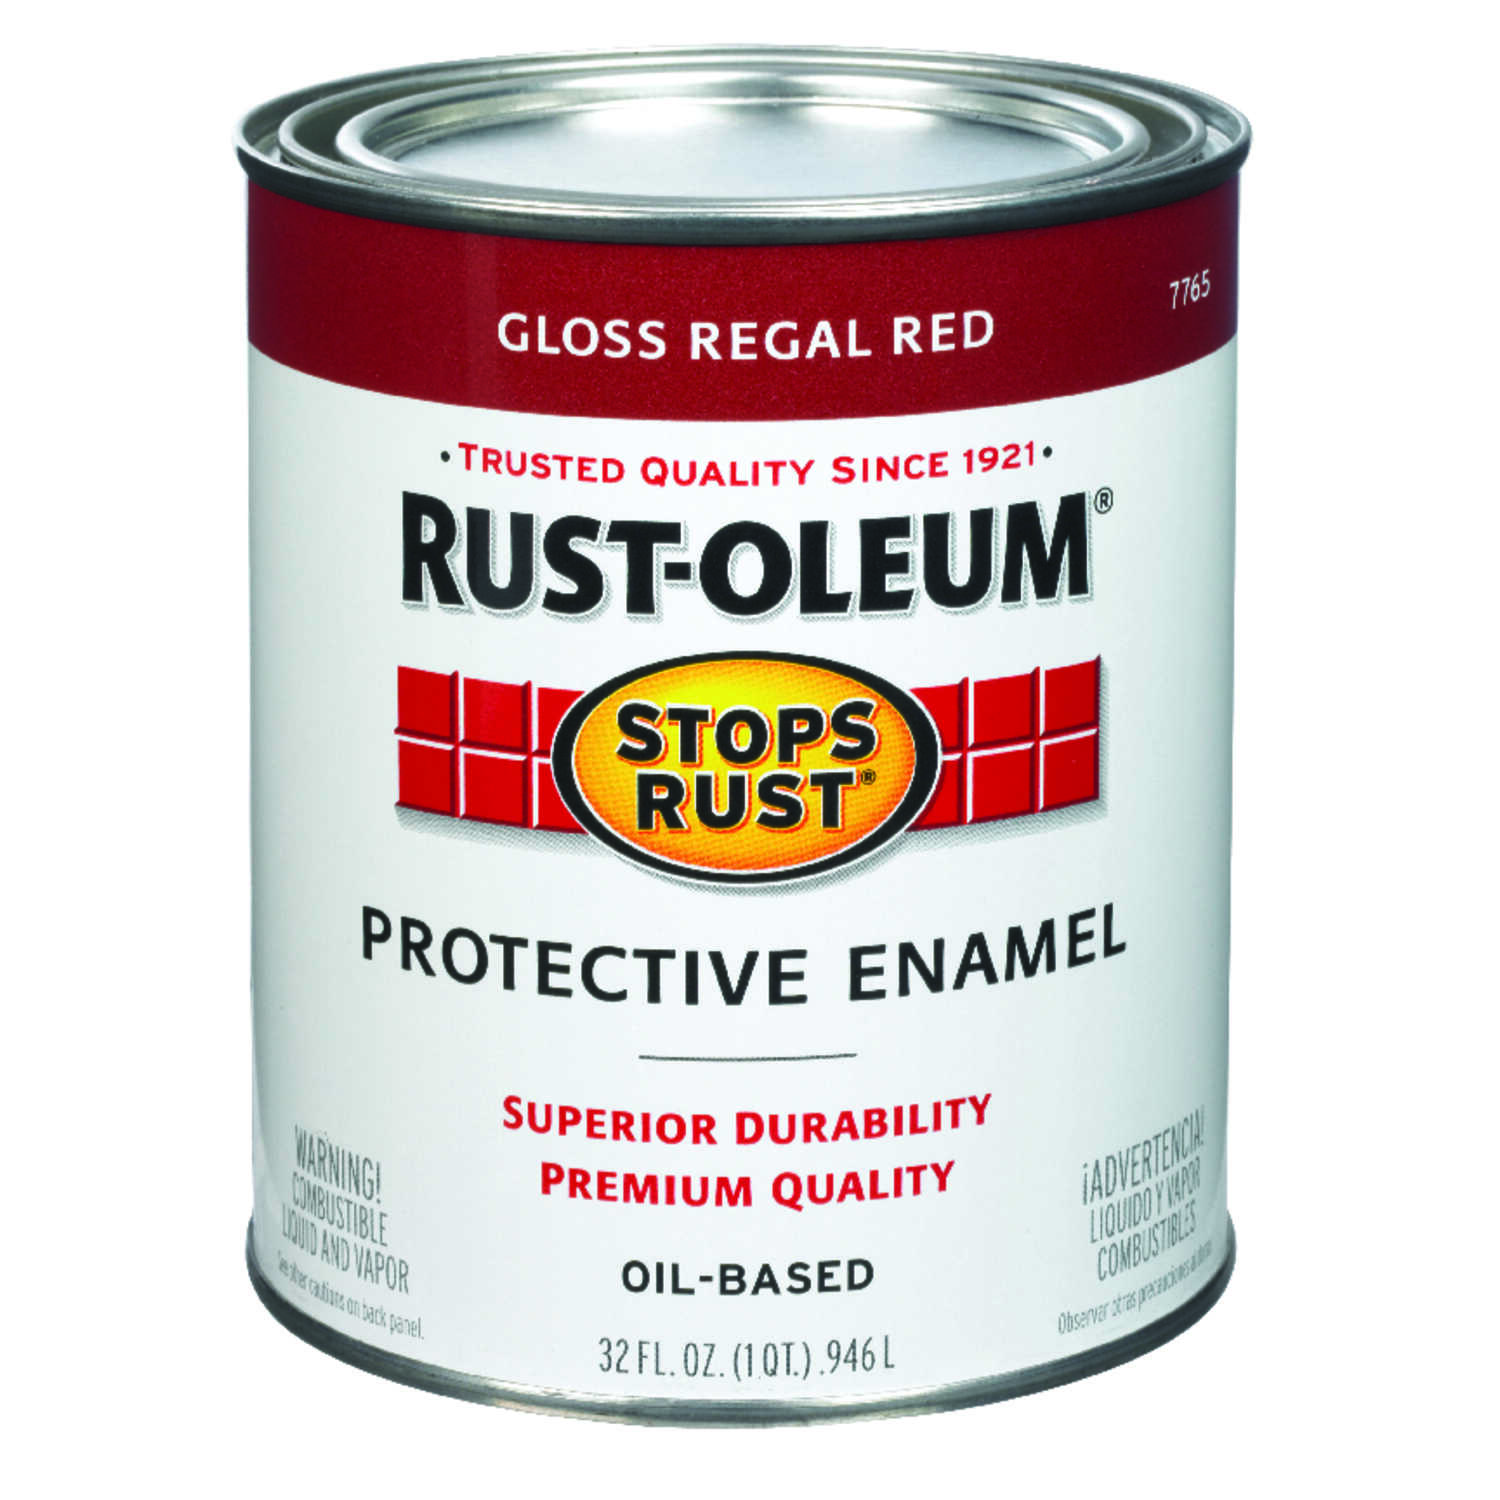 Rust-Oleum  Indoor and Outdoor  Gloss  Regal Red  1 qt. Protective Enamel